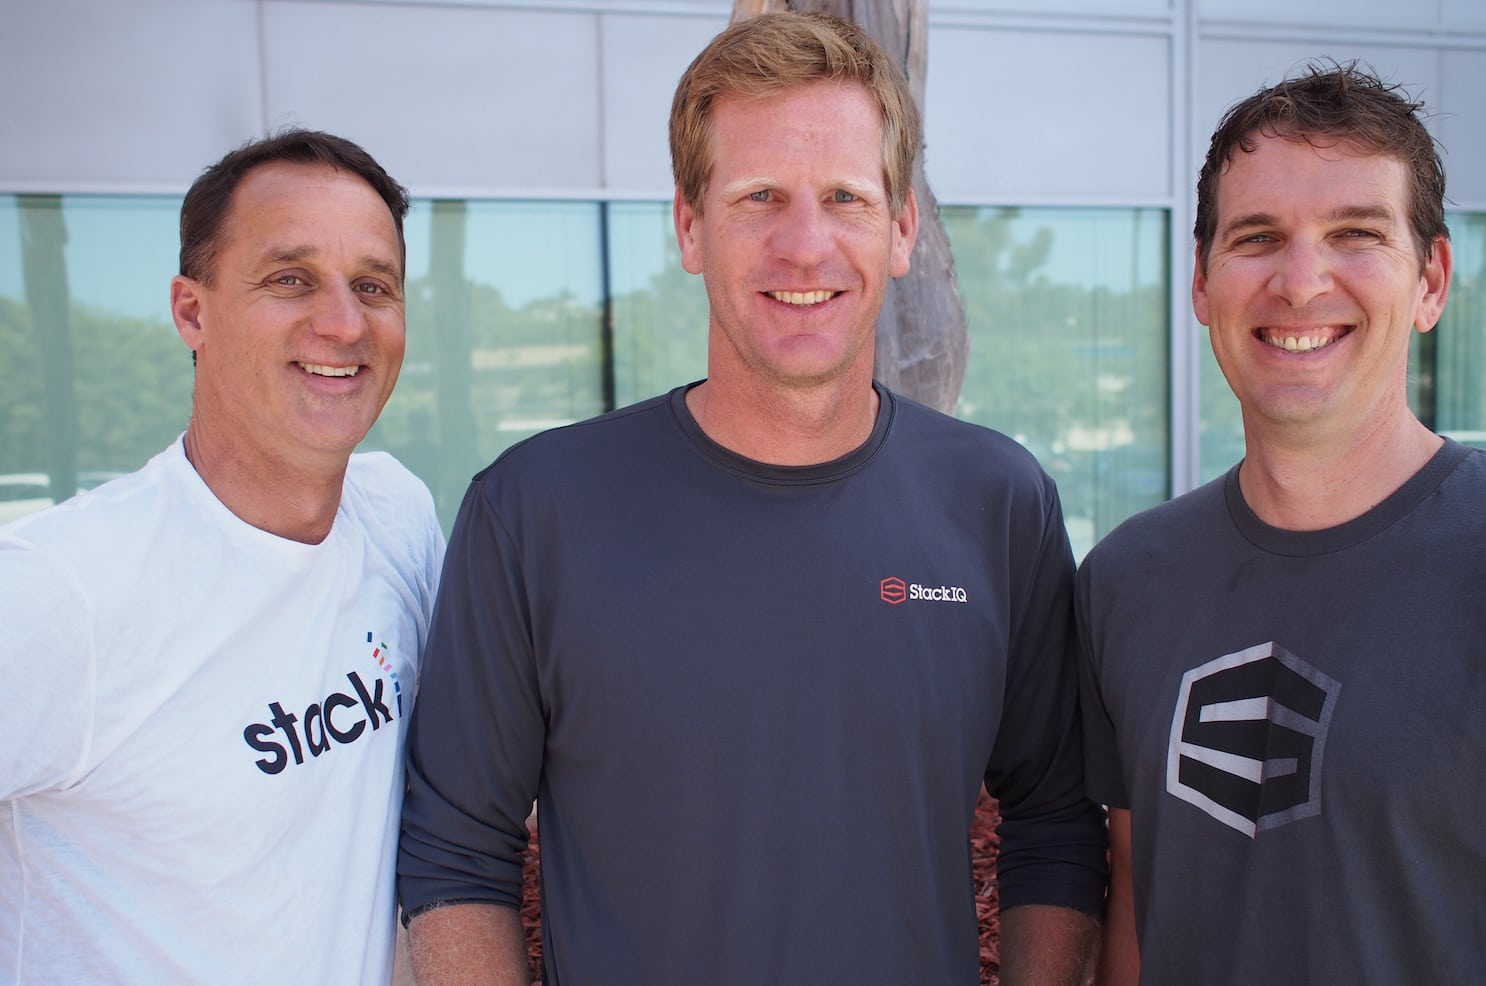 StackIQ co-founders (from left) Greg Bruno, Tim McIntire, and Mason Katz. StackIQ image used with permission.